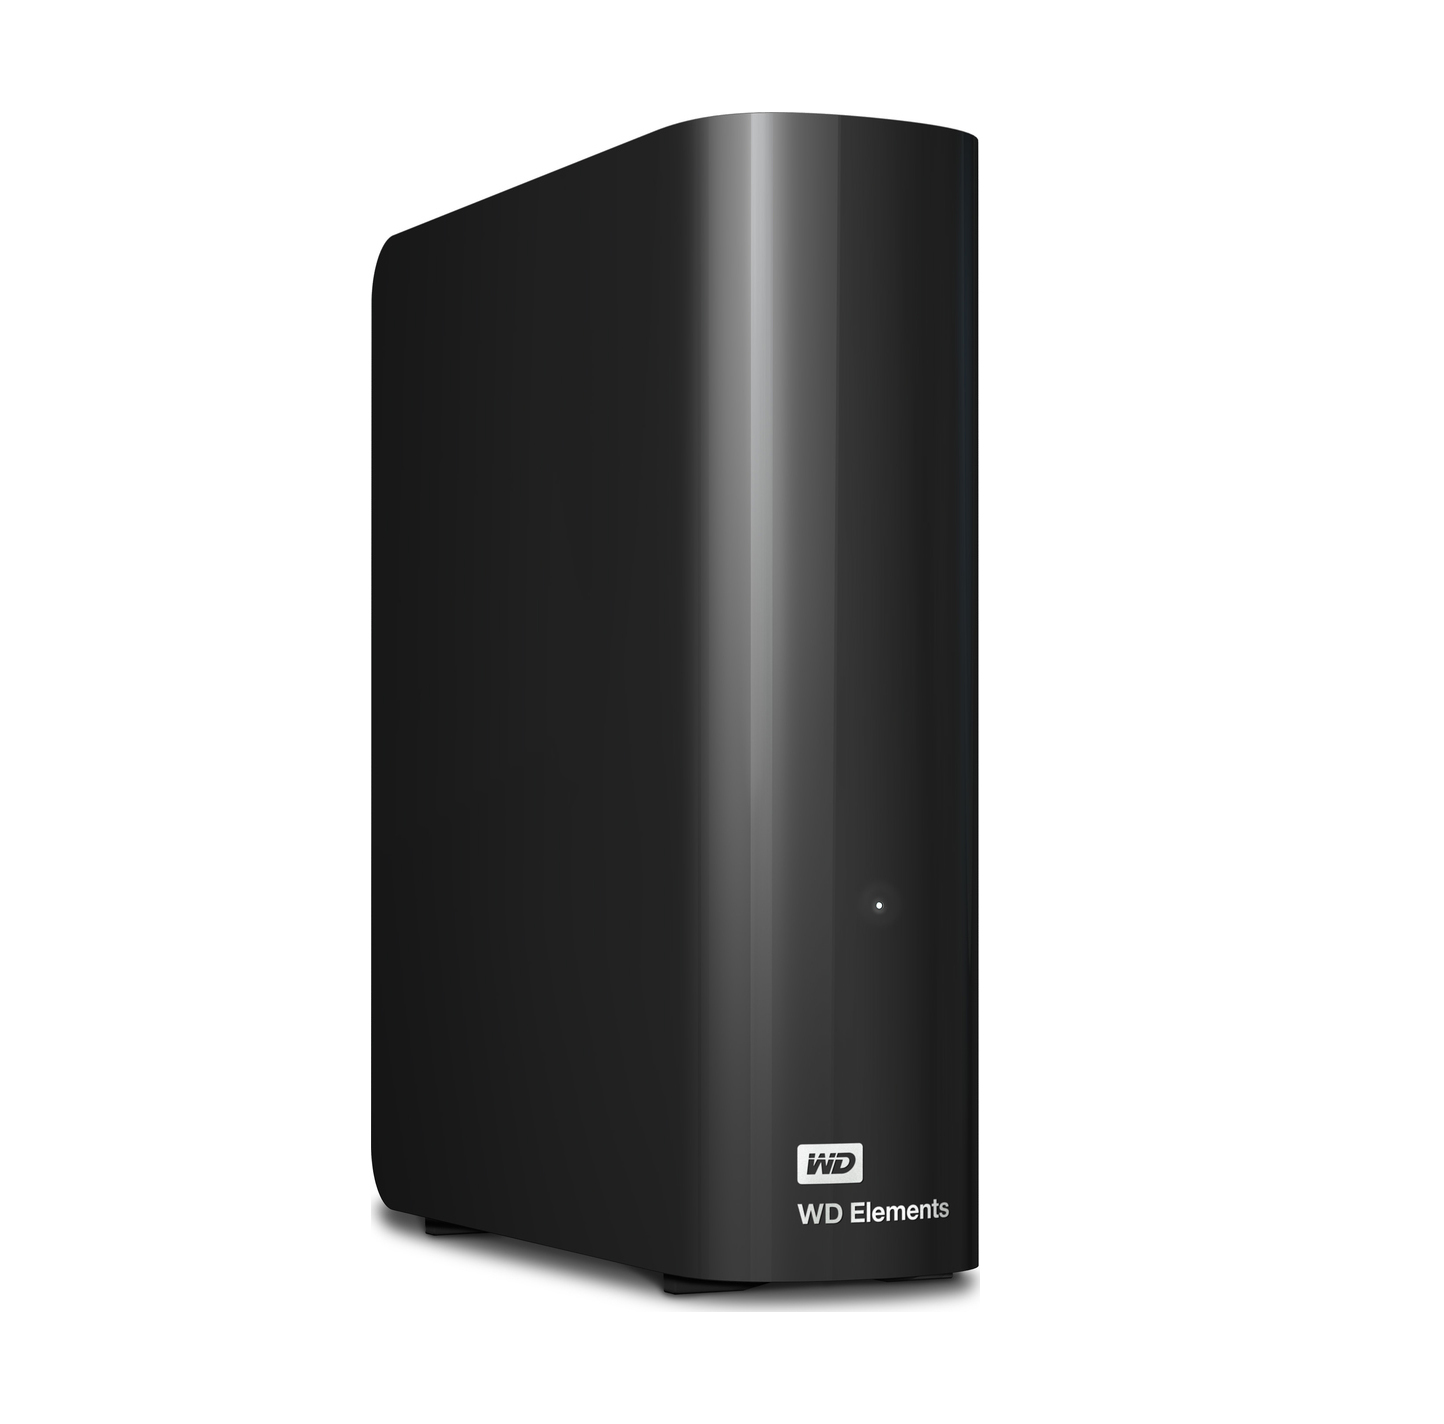 Western Digital Elements Desktop 10TB Εξωτερικός Σκληρός Δίσκος USB 3.0 WDBWLG0100HBK-EESN